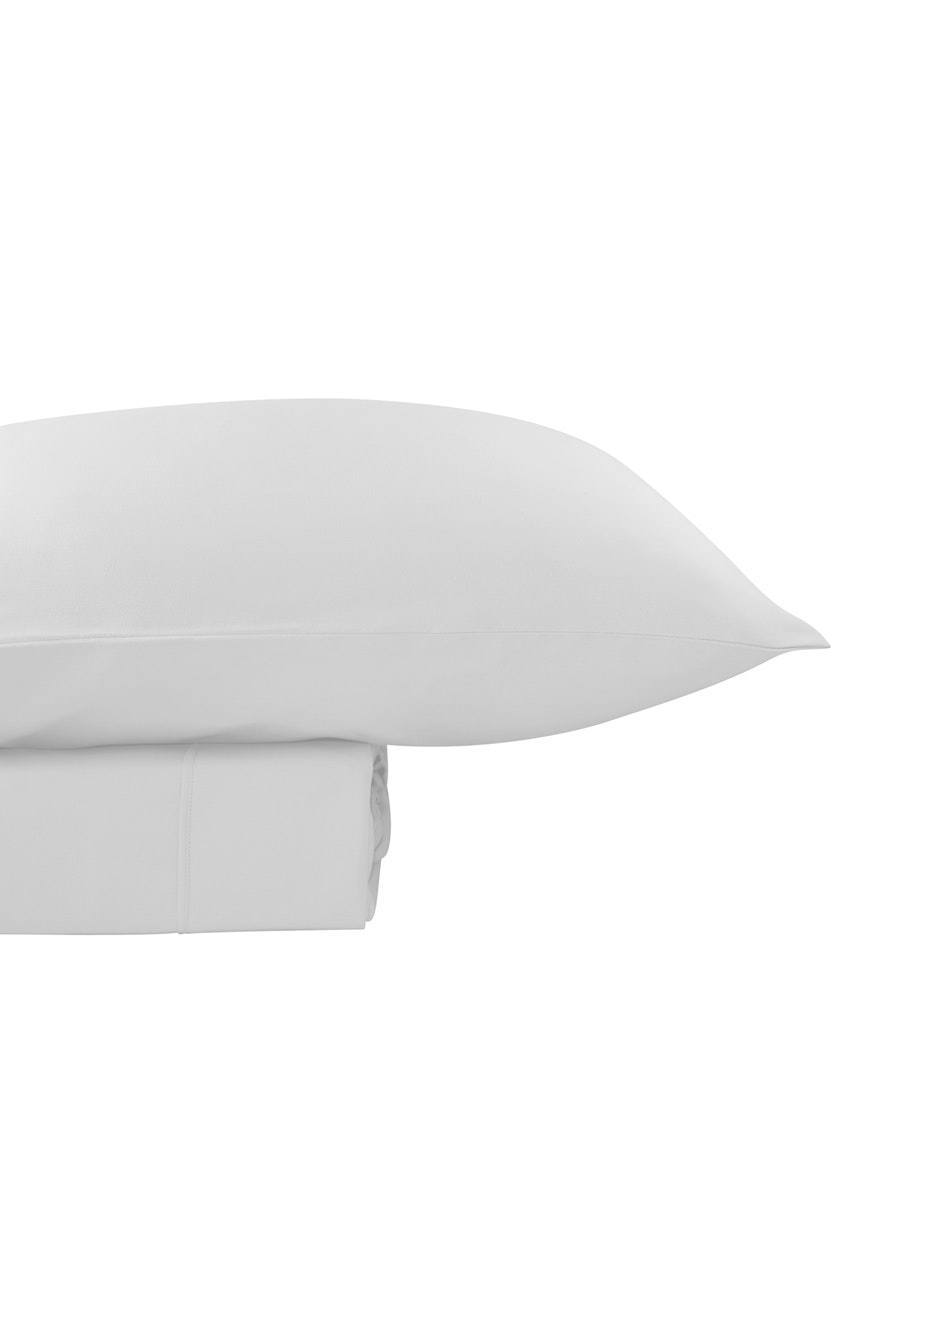 Thermal Flannel Sheet Sets - White - King Single Bed